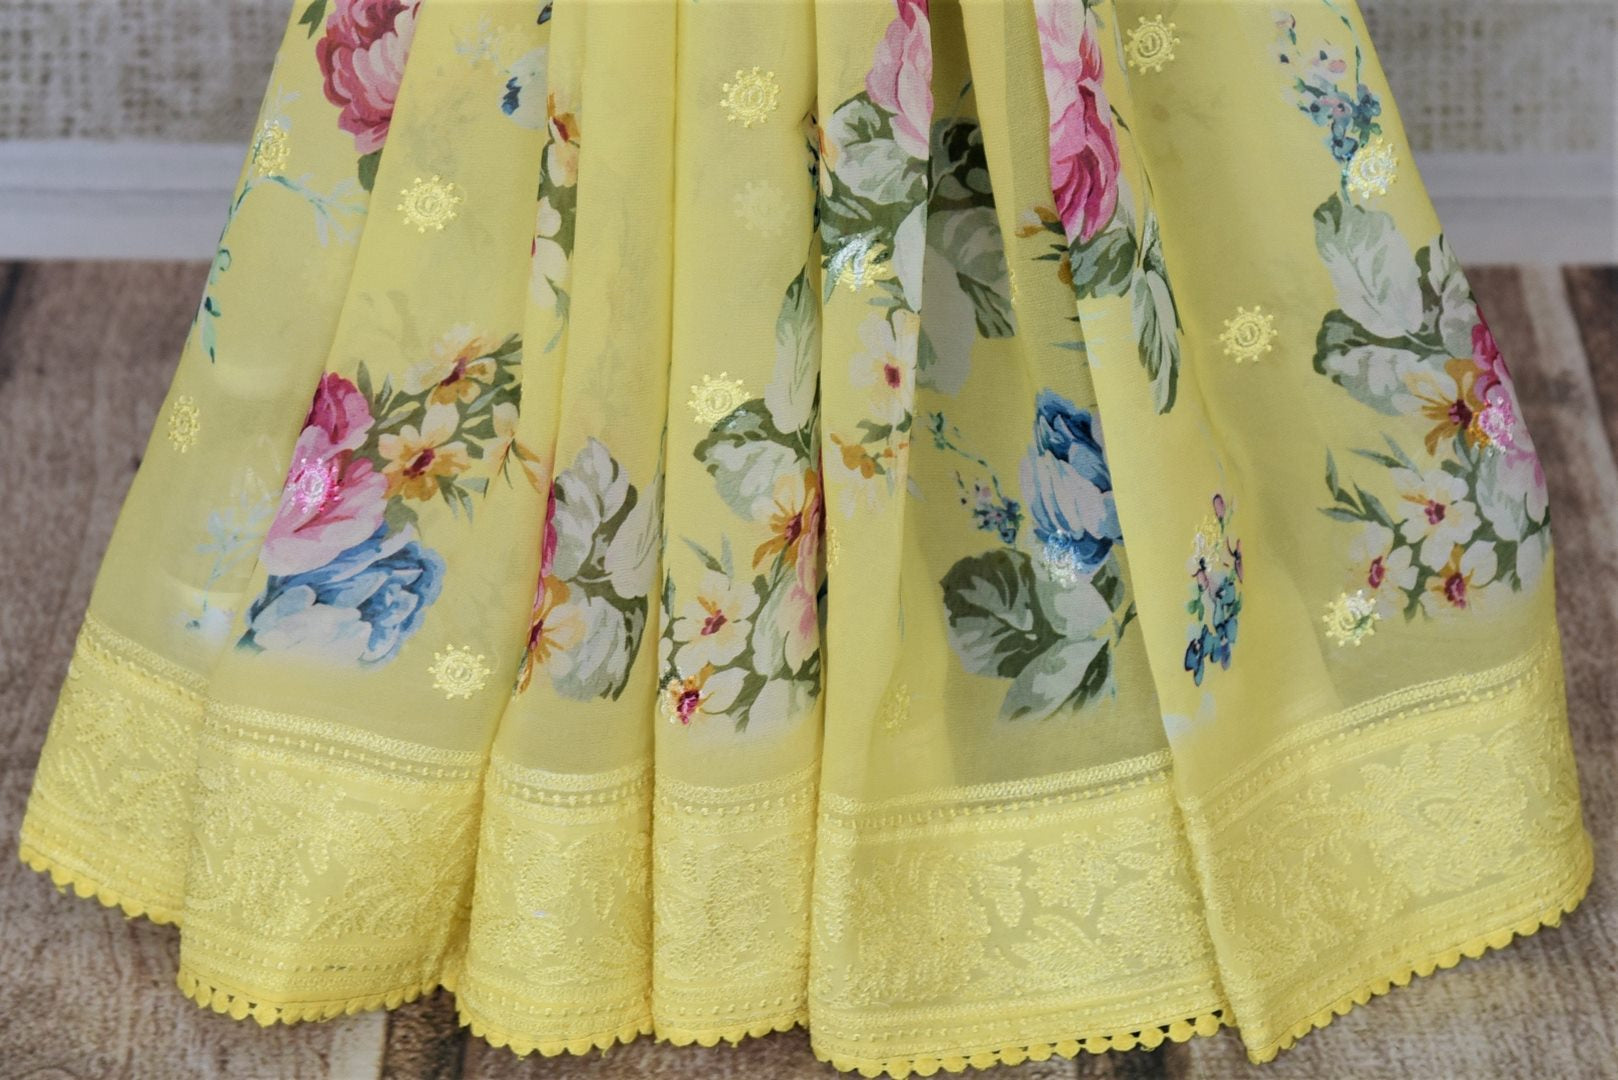 Buy beautiful lemon yellow floral georgette saree online in USA with embroidered border. Be the talk of the occasions in exquisite linen sarees, embroidered saris from Pure Elegance Indian fashion store in USA. -pleats